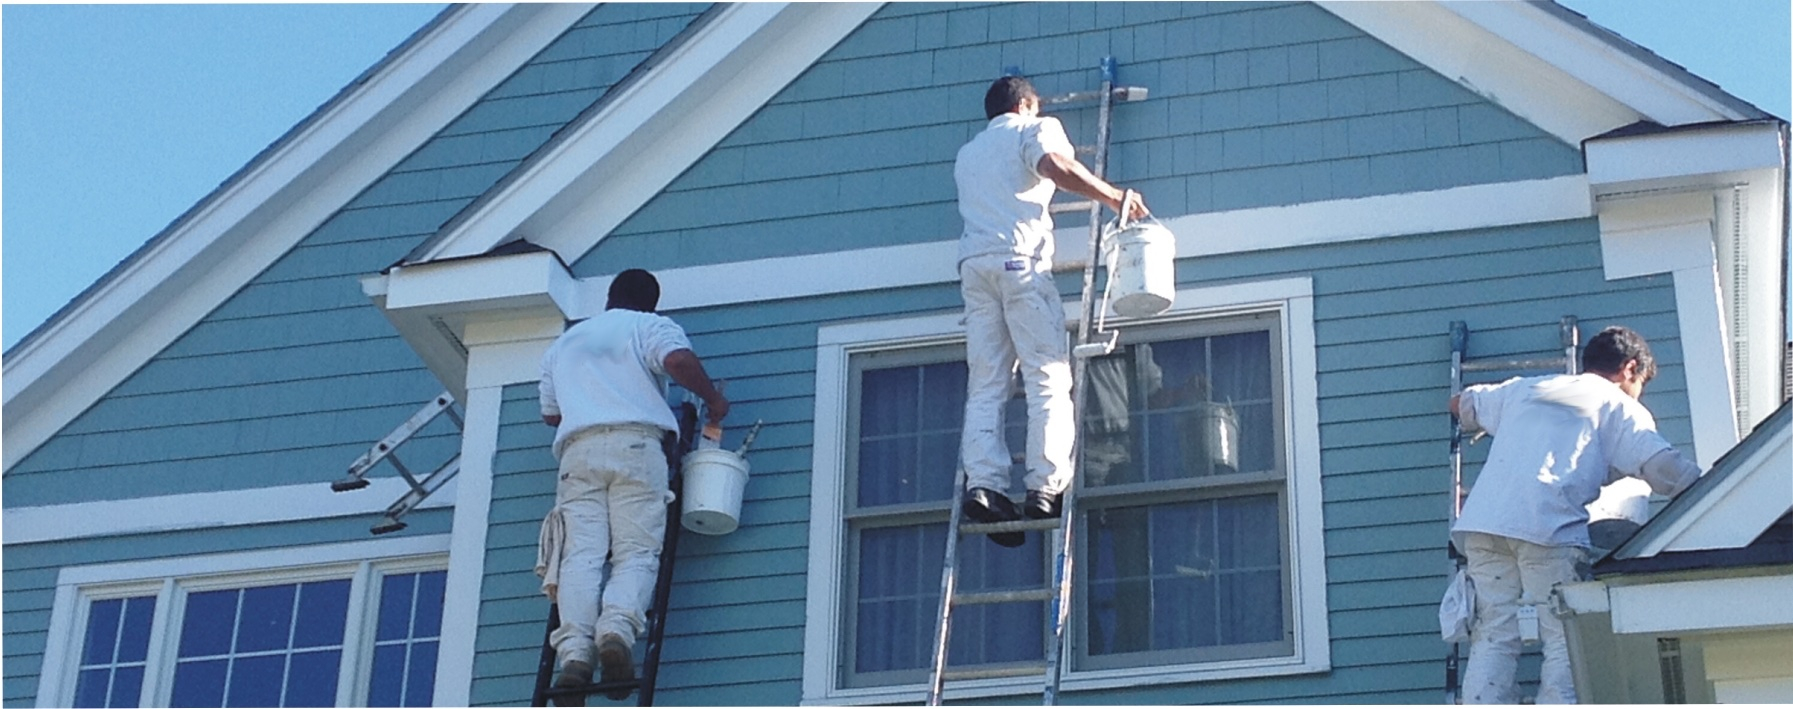 Find a reliable Painter for your painting Job - Home Improvements AU